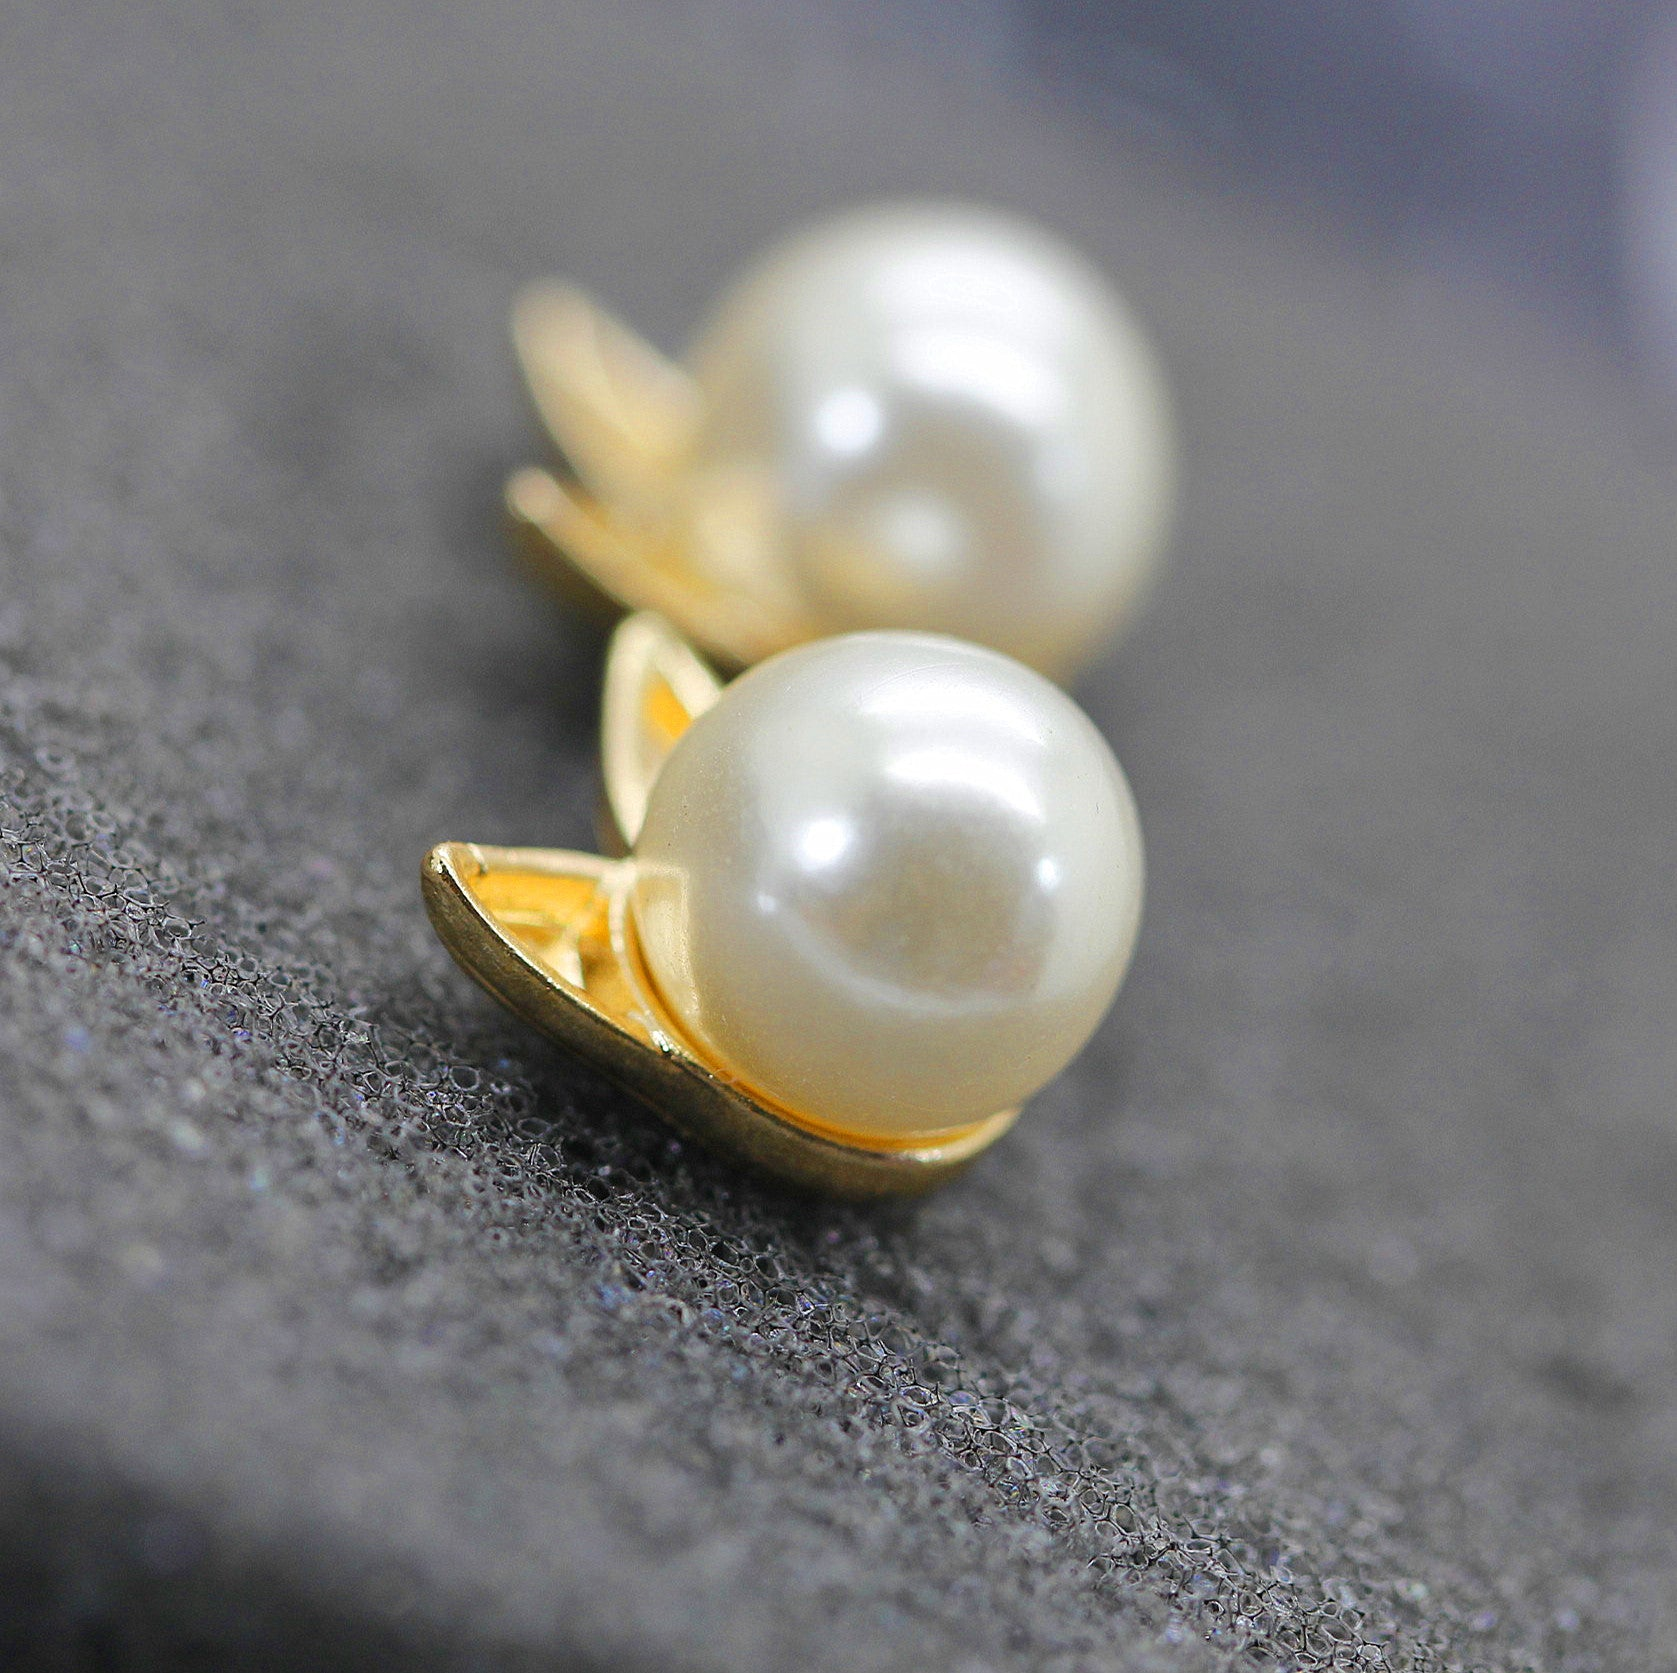 Gold and Pearl Mini Stud Cat Earrings - Thick 'N' Curvy Shop - 4